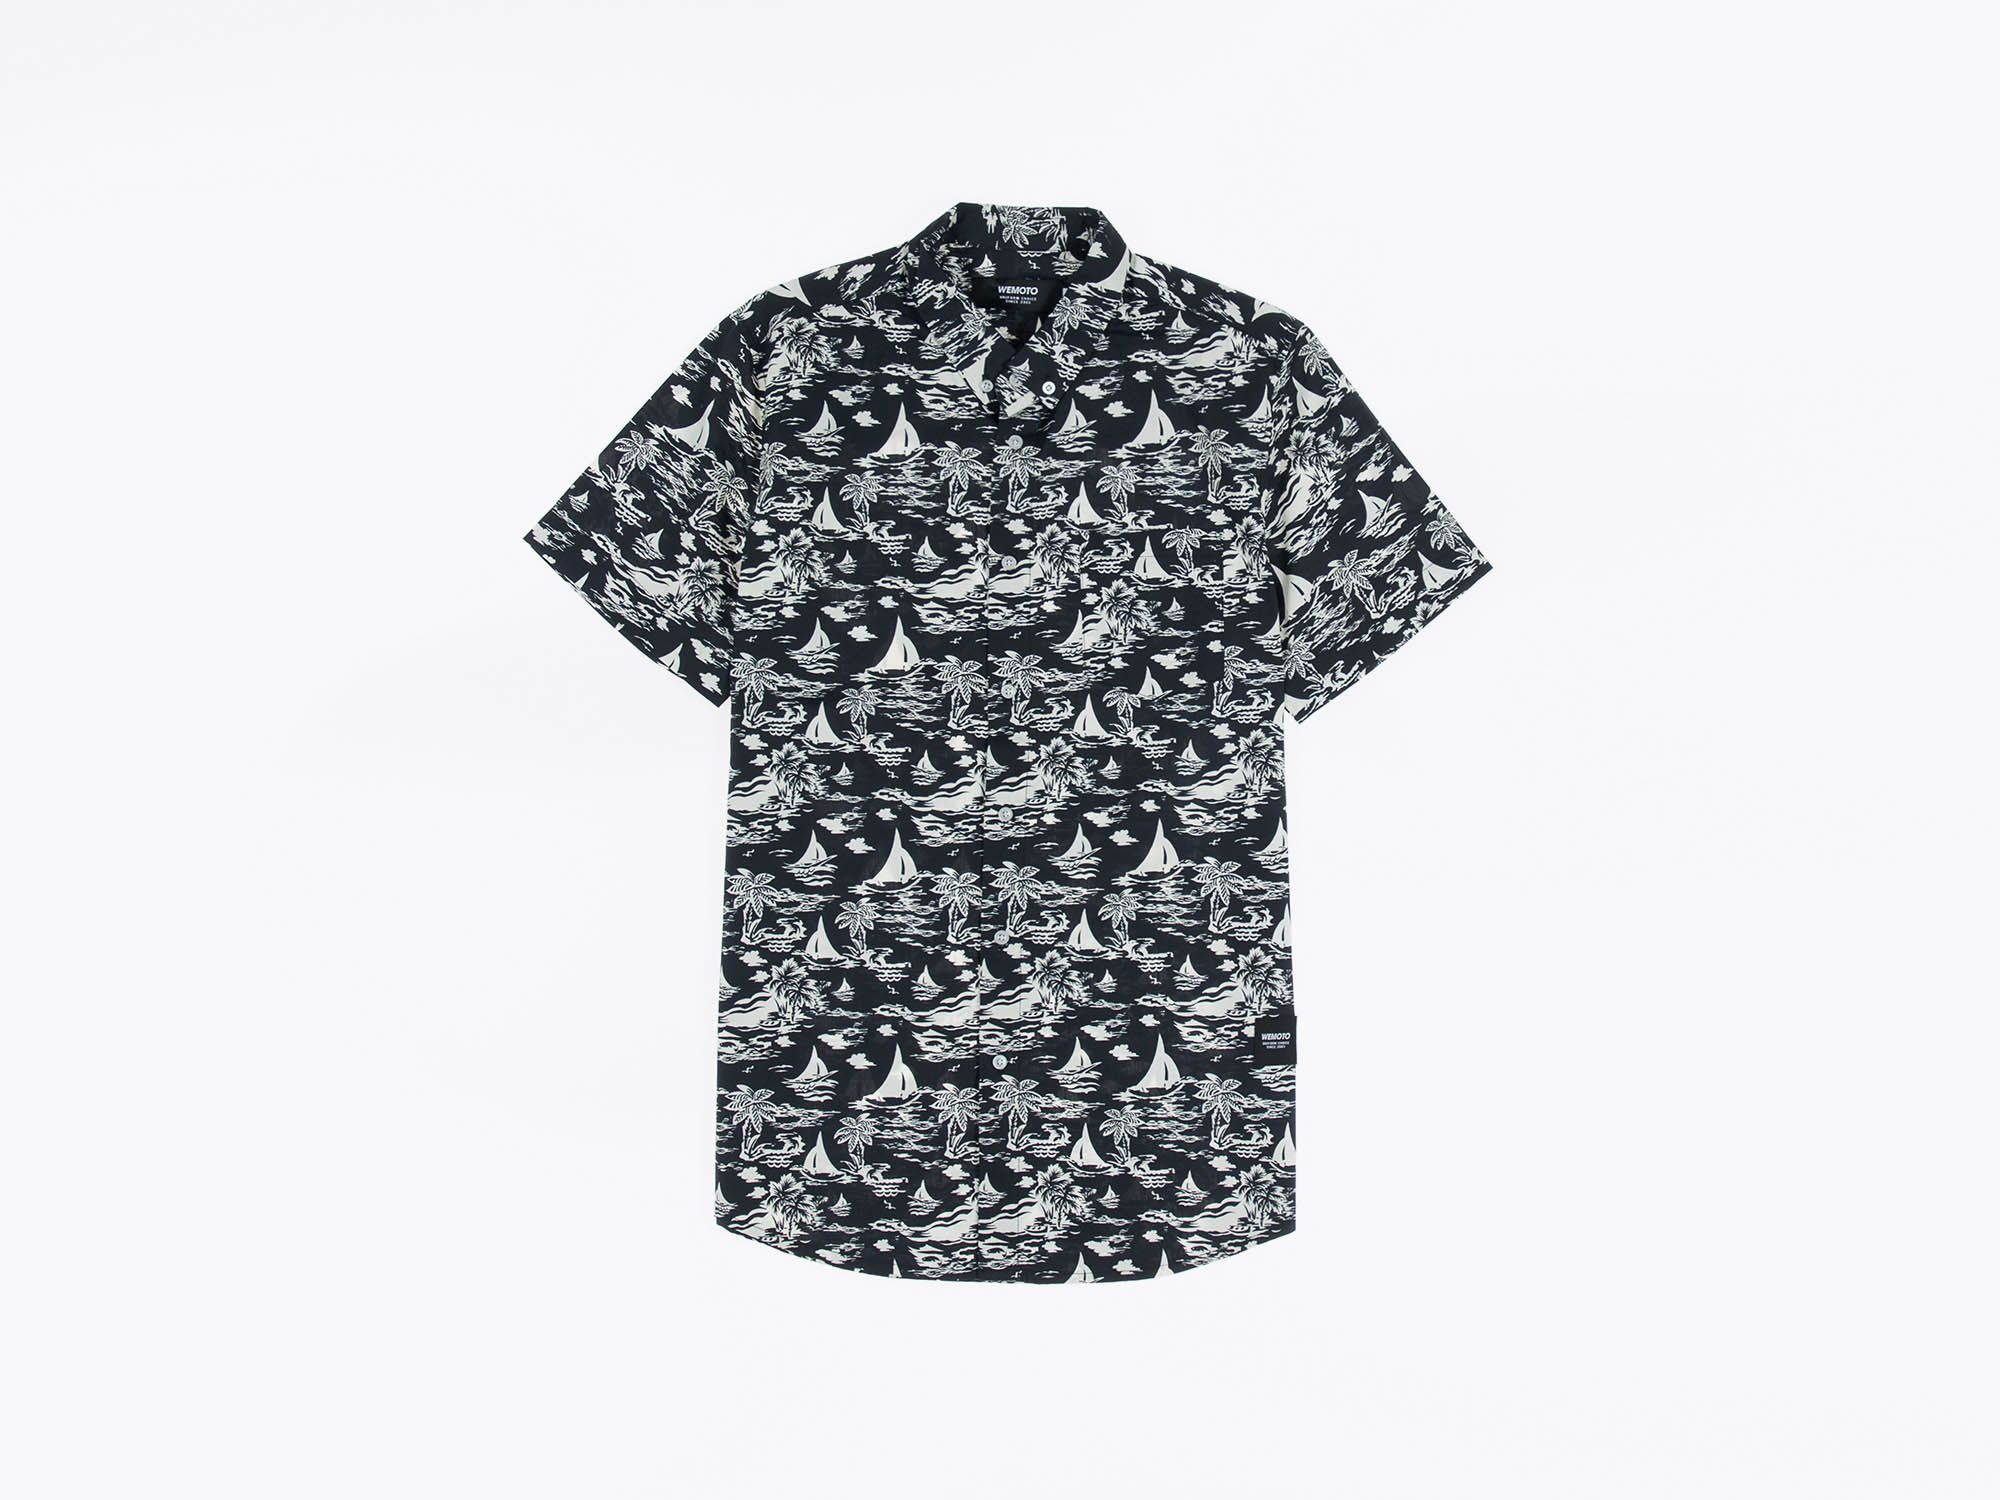 The Wemoto Ohata button down shirt is made from a 100% cotton poplin construction. It comes with a sophisticated version of a button down collar and has a regular fit.